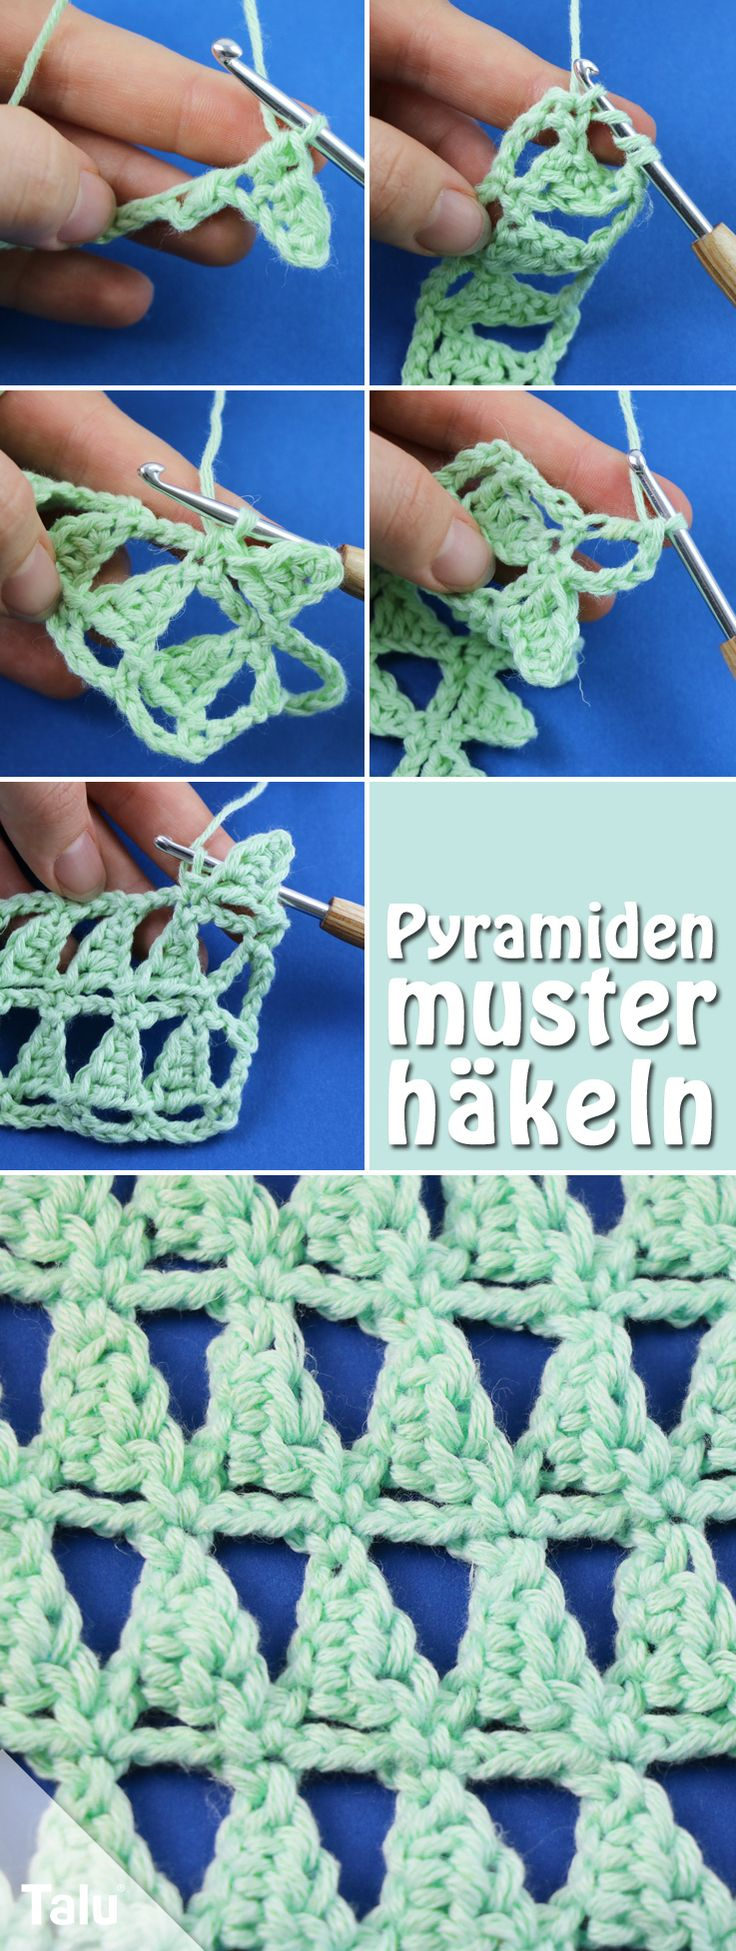 243 best Handarbeit - DIY-Anleitungen images on Pinterest